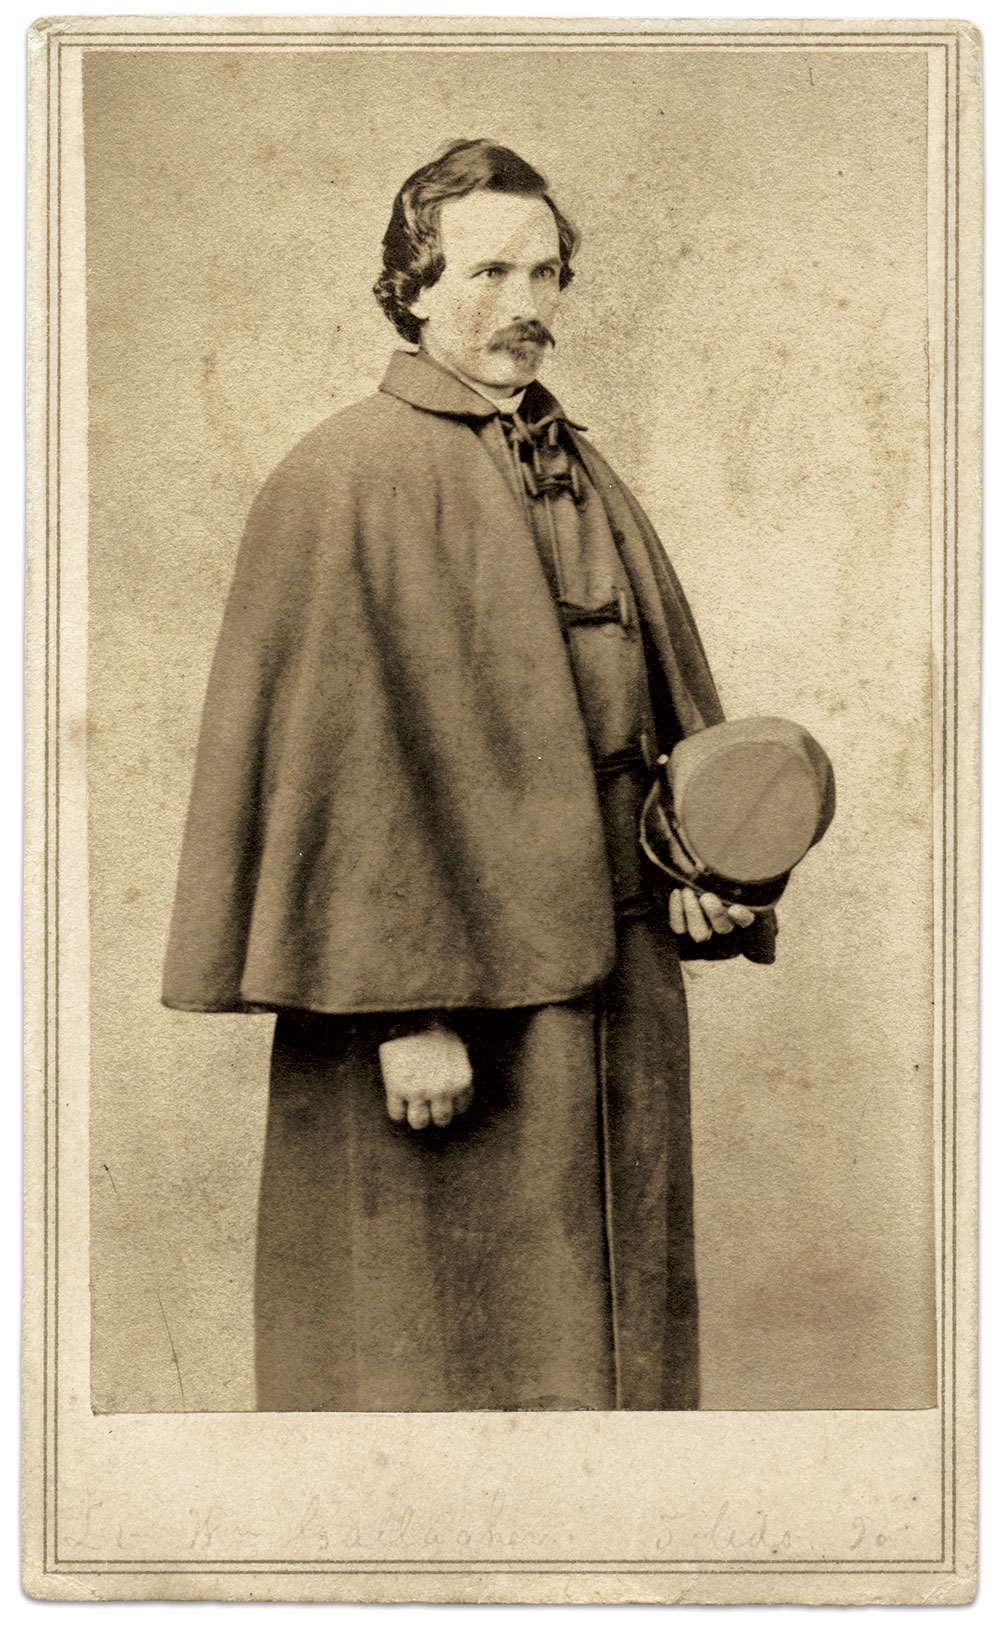 Carte de visite by Mansfield's City Gallery of St. Louis, Mo. Karl Sundstrom Collection.